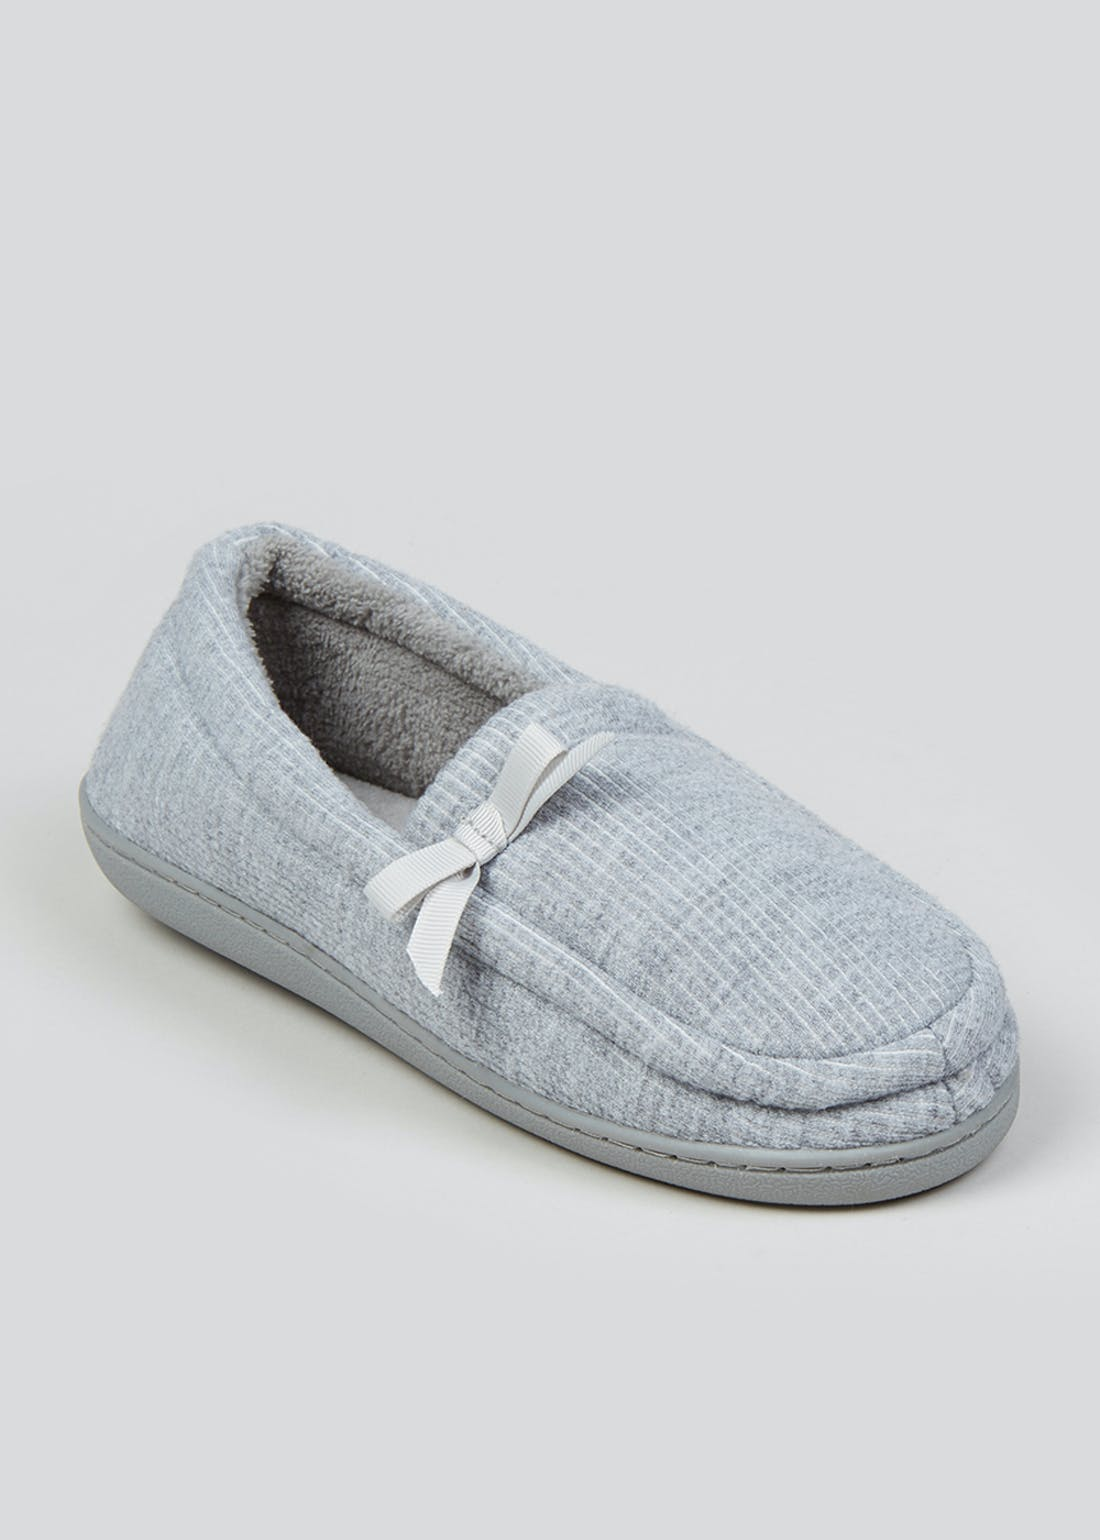 Grey Velour Lined Slippers